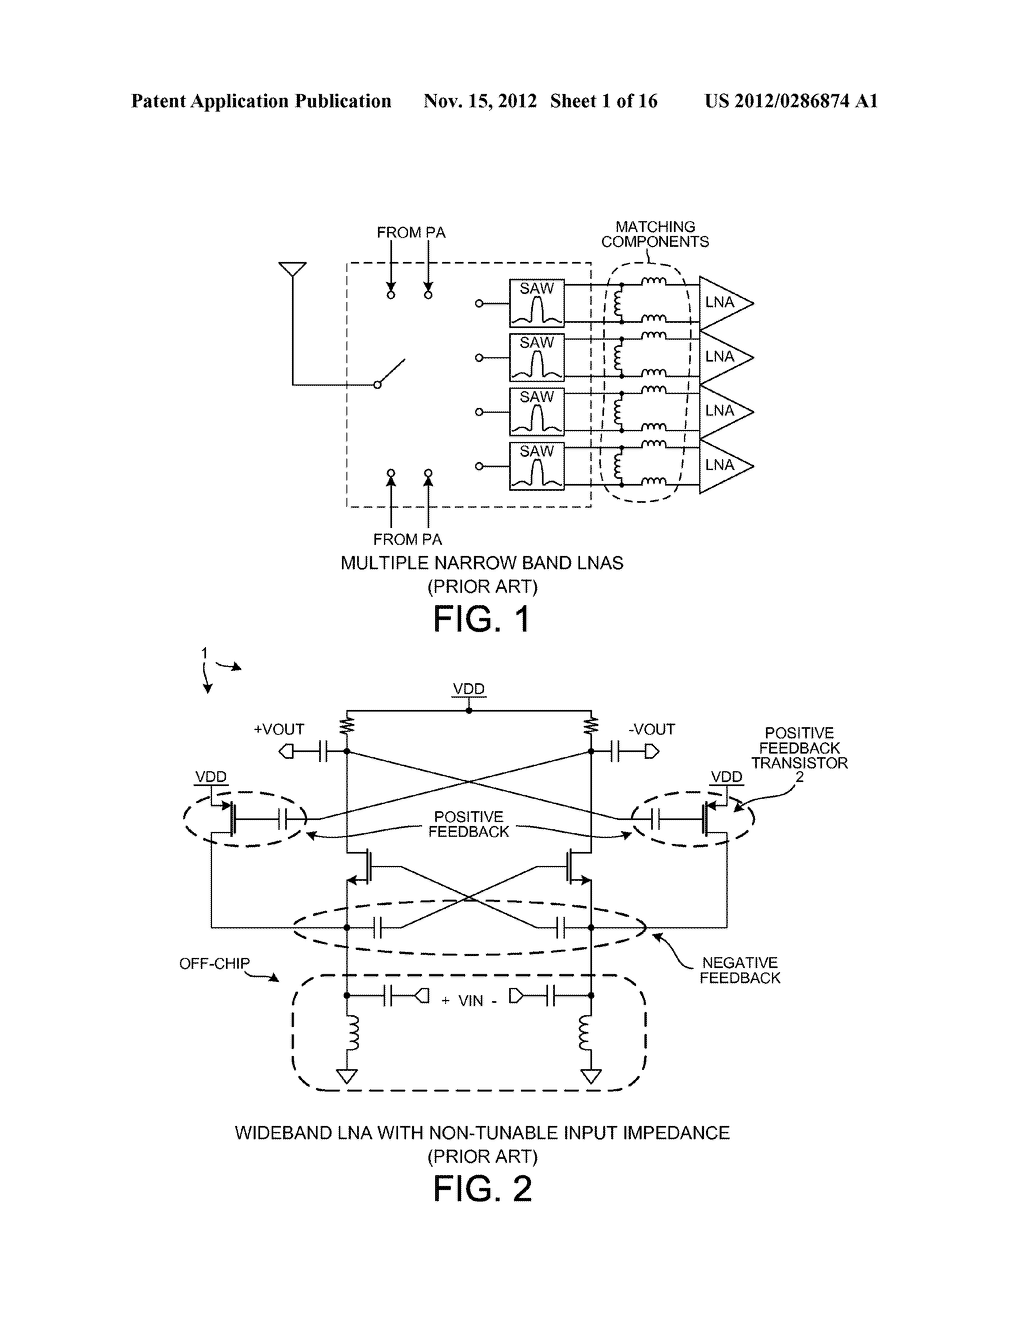 Positive Feedback Common Gate Low Noise Amplifier Diagram Transistor Schematic And Image 02